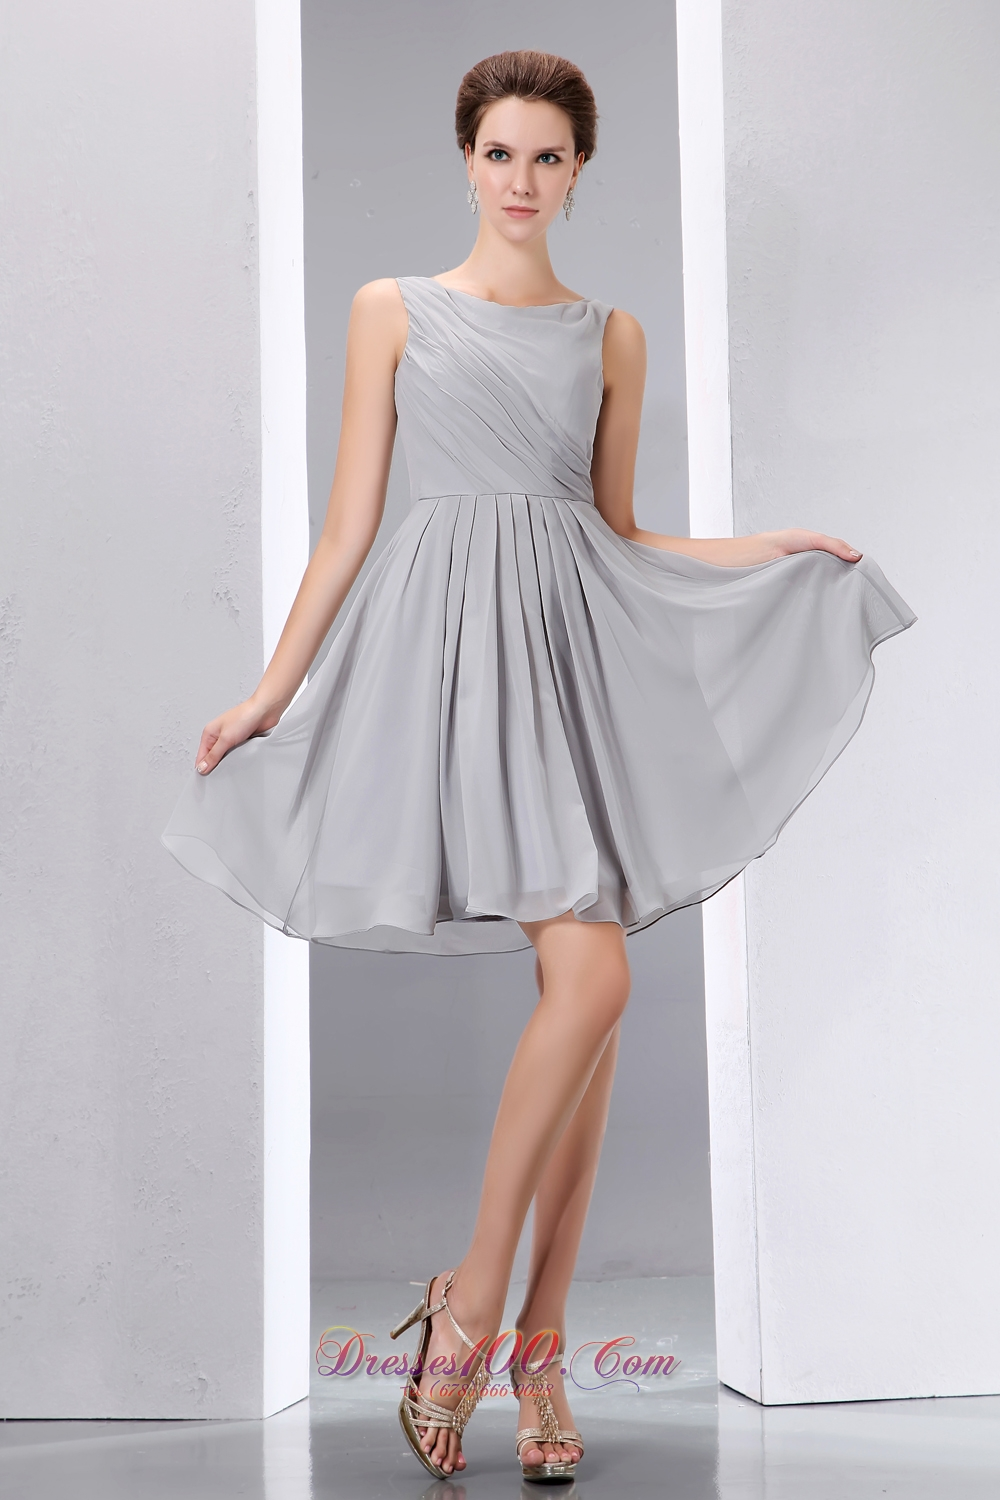 Scoop Grey Chiffon Short Ruched Cocktail Dama Dress |Short Prom Dresses